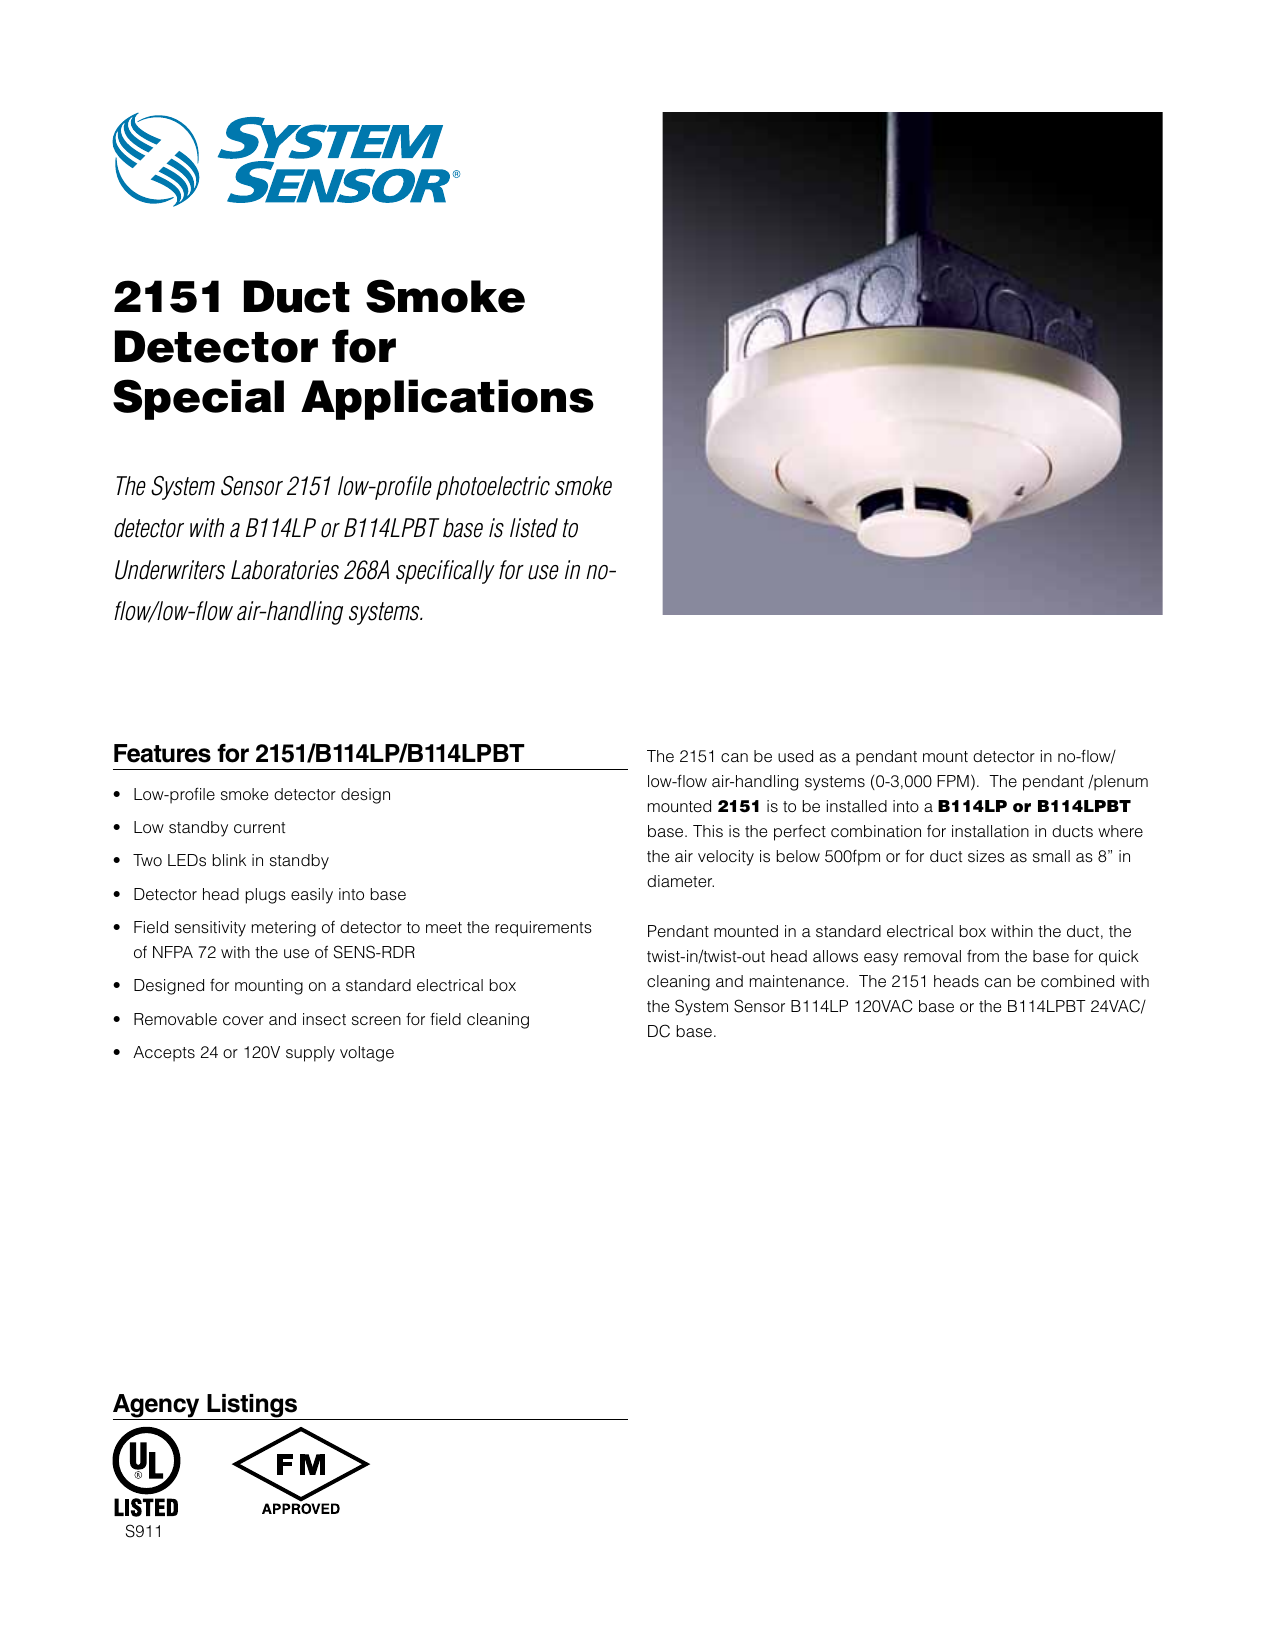 2151 duct smoke detector for special applications the system sensor 2151  low-profile photoelectric smoke detector with a b114lp or b114lpbt base is  listed